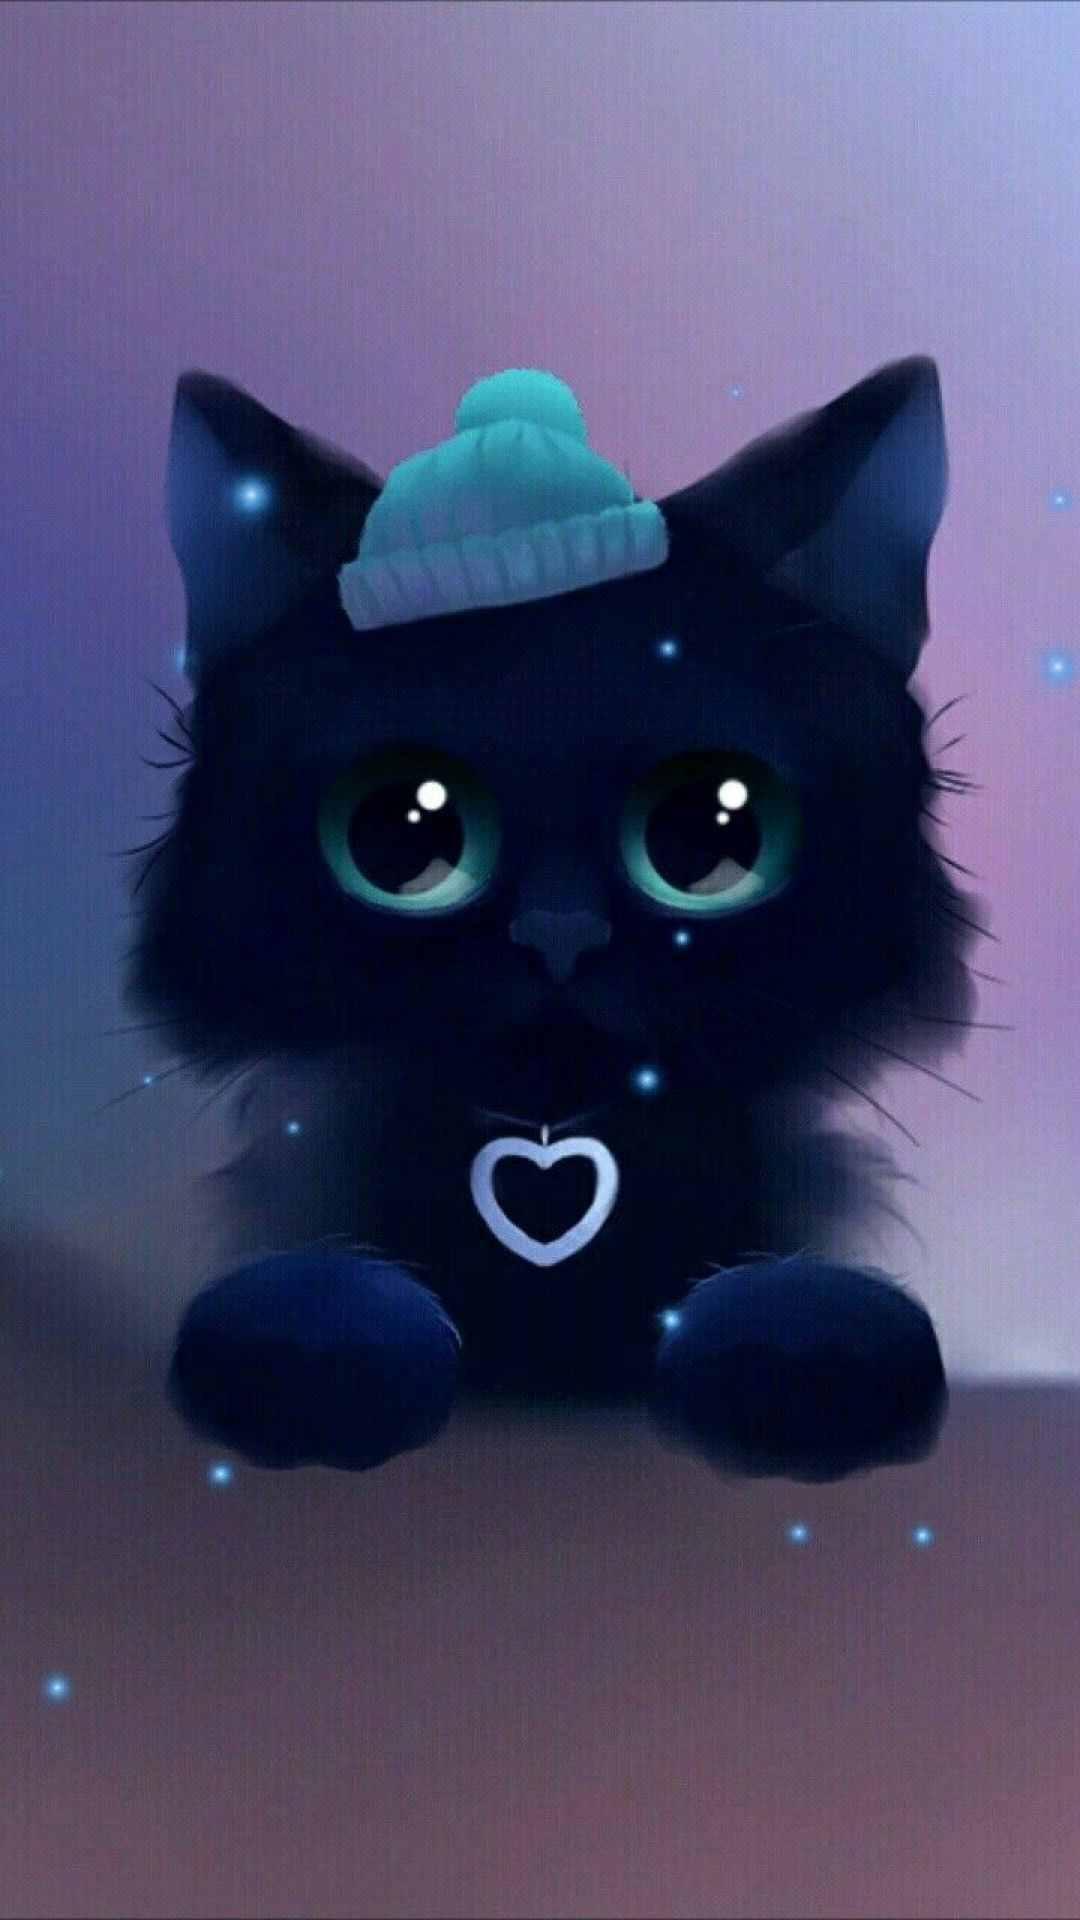 35 Kawaii Anime Cat Hd Wallpapers Desktop Background Android Iphone 1080p 4k 1080x1920 2020